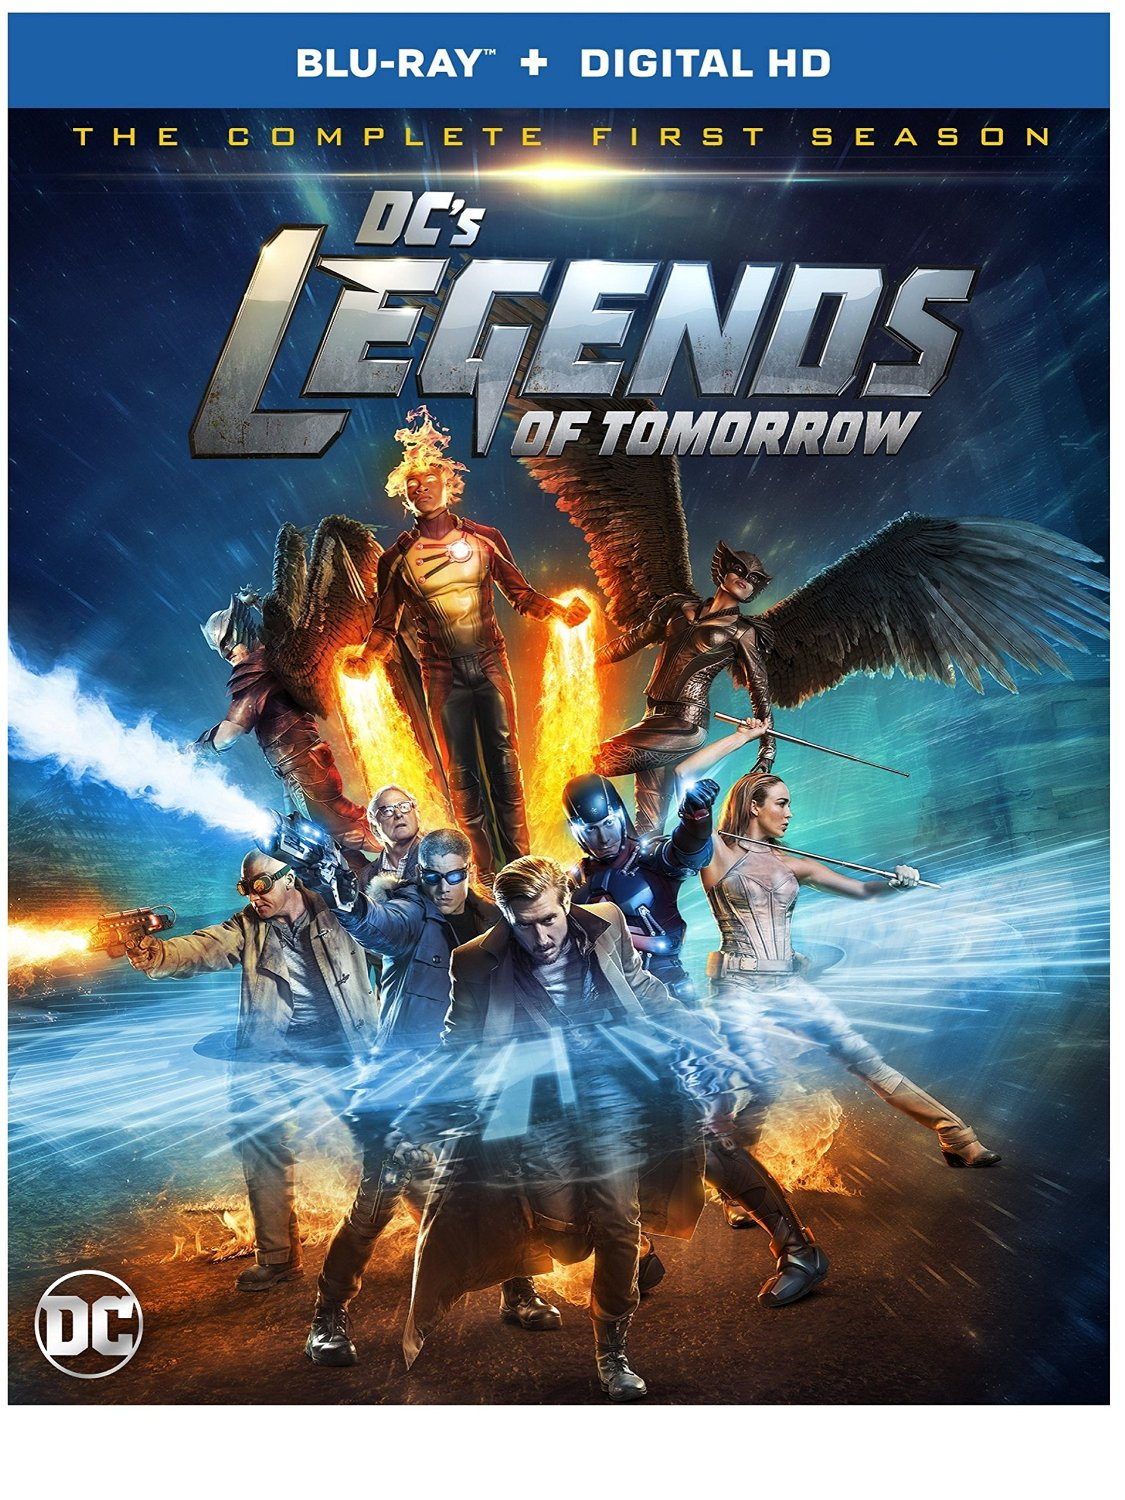 DC's Legends of Tomorrow [TV Series] - DC's Legends of Tomorrow: The Complete First Season